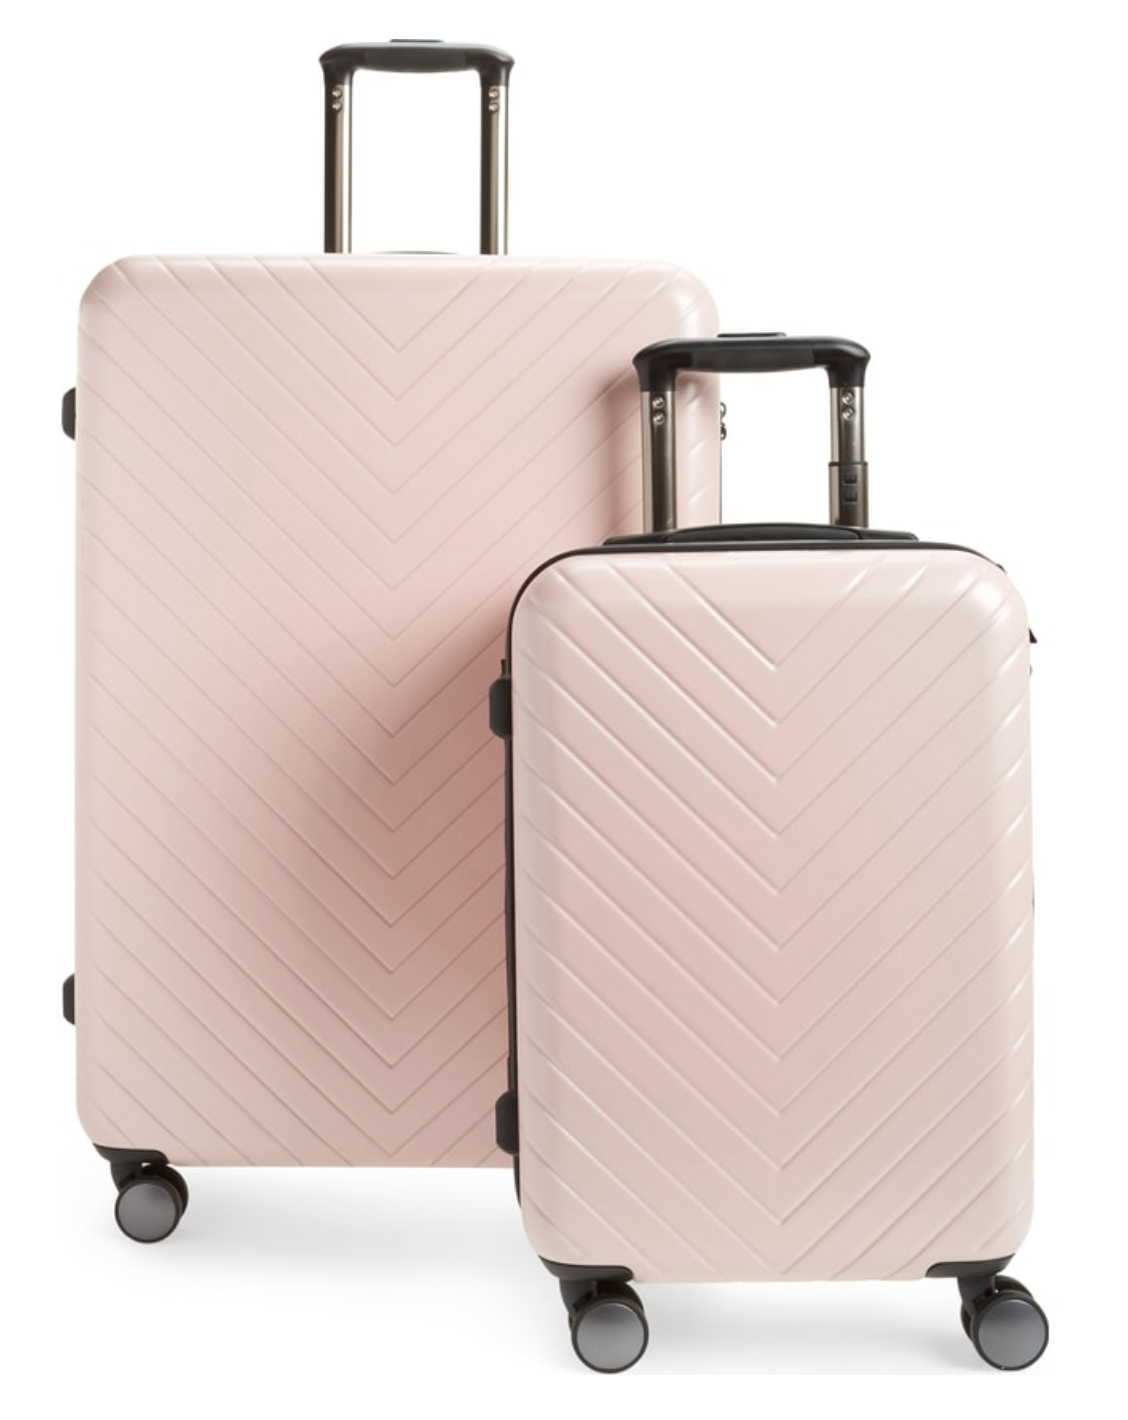 where to buy cute luggage | best pink luggage | how to travel in style